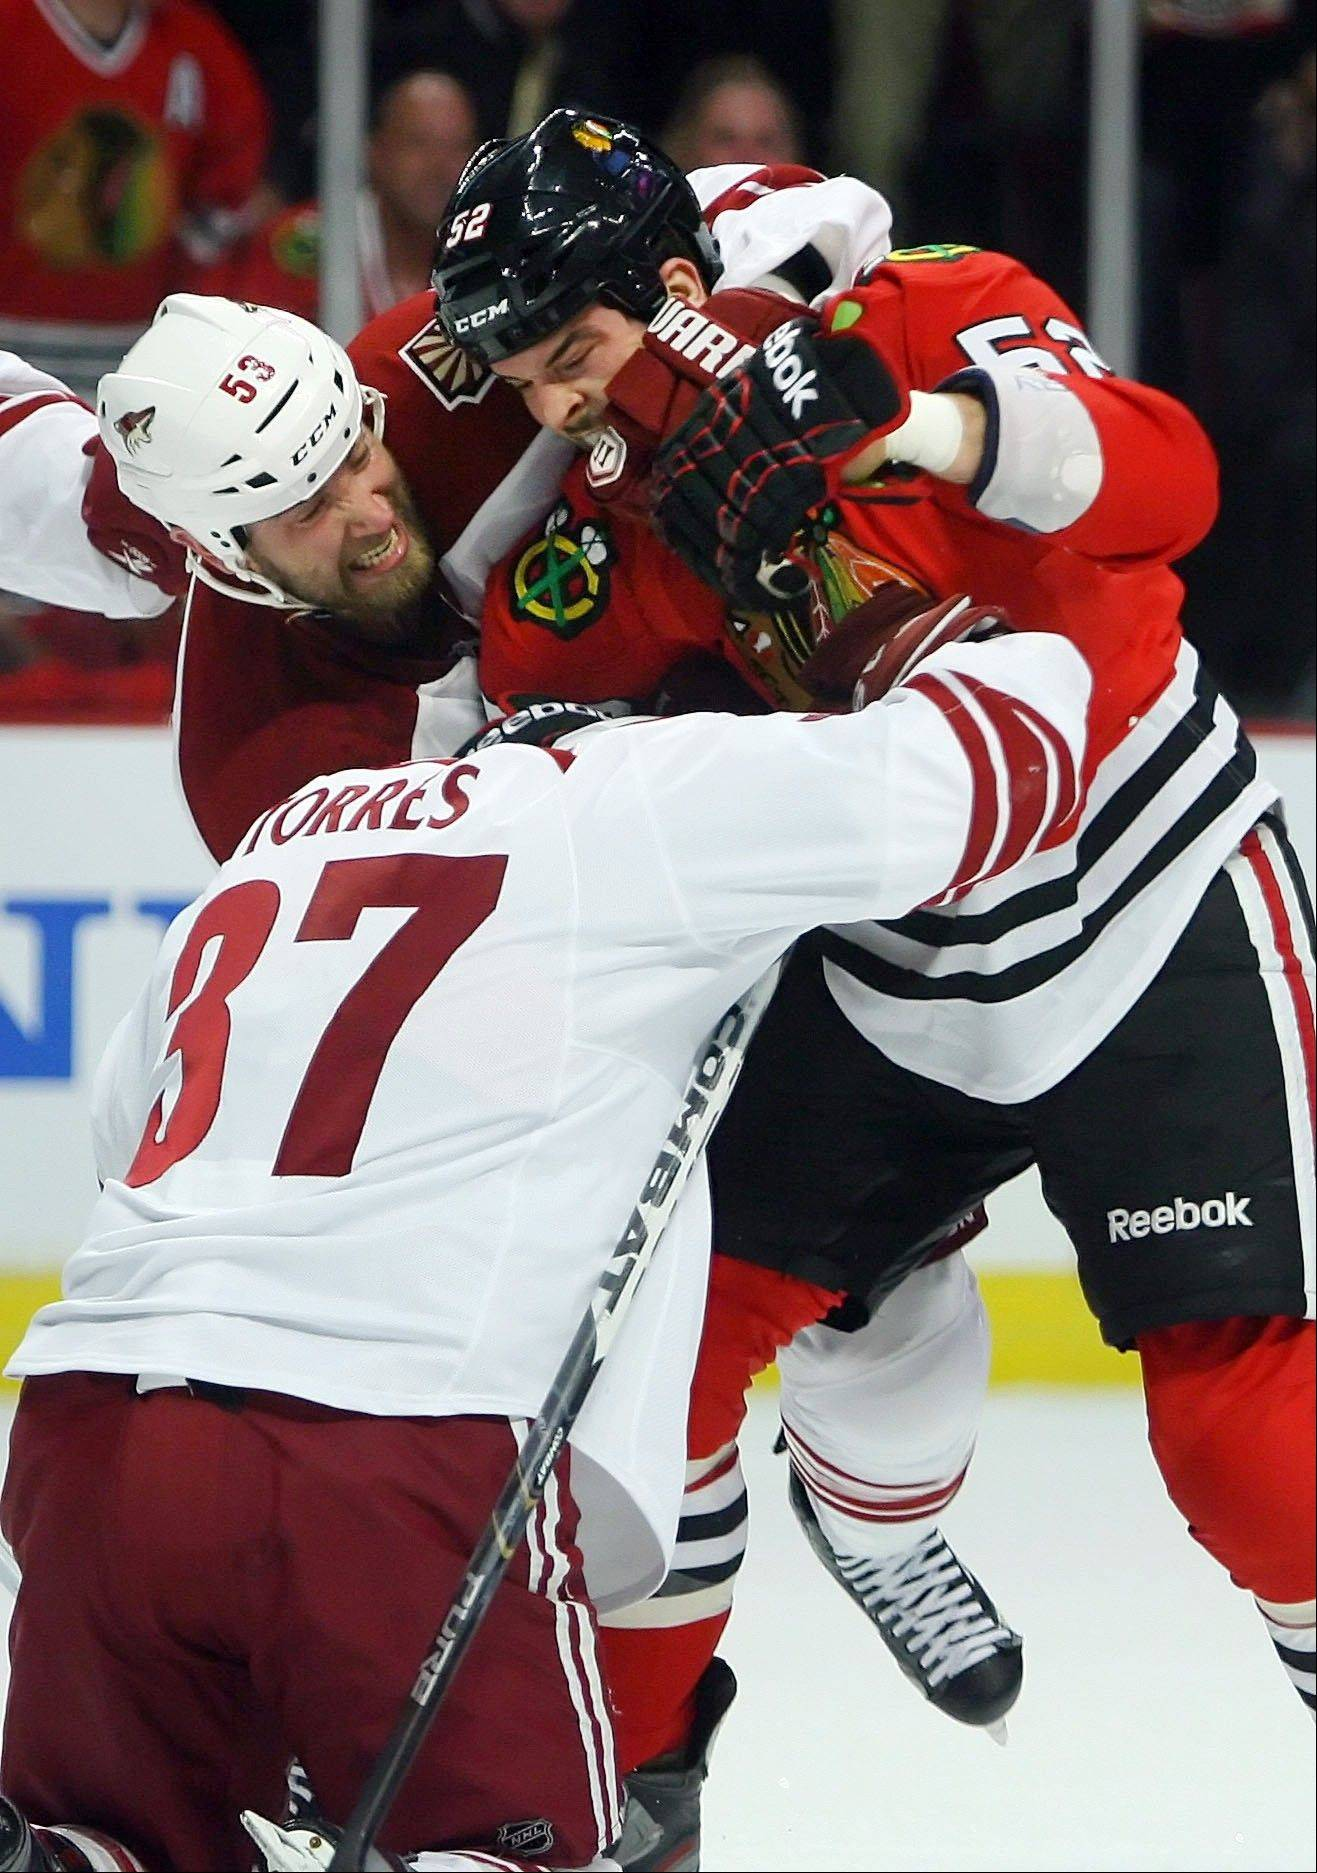 Blackhawks left wing Brandon Bollig goes after Phoenix Coyotes left wing Raffi Torres during Game 3 of the Western Conference quarterfinals Tuesday at the United Center. Torres has been suspended indefinitely for his hit on Marian Hossa.